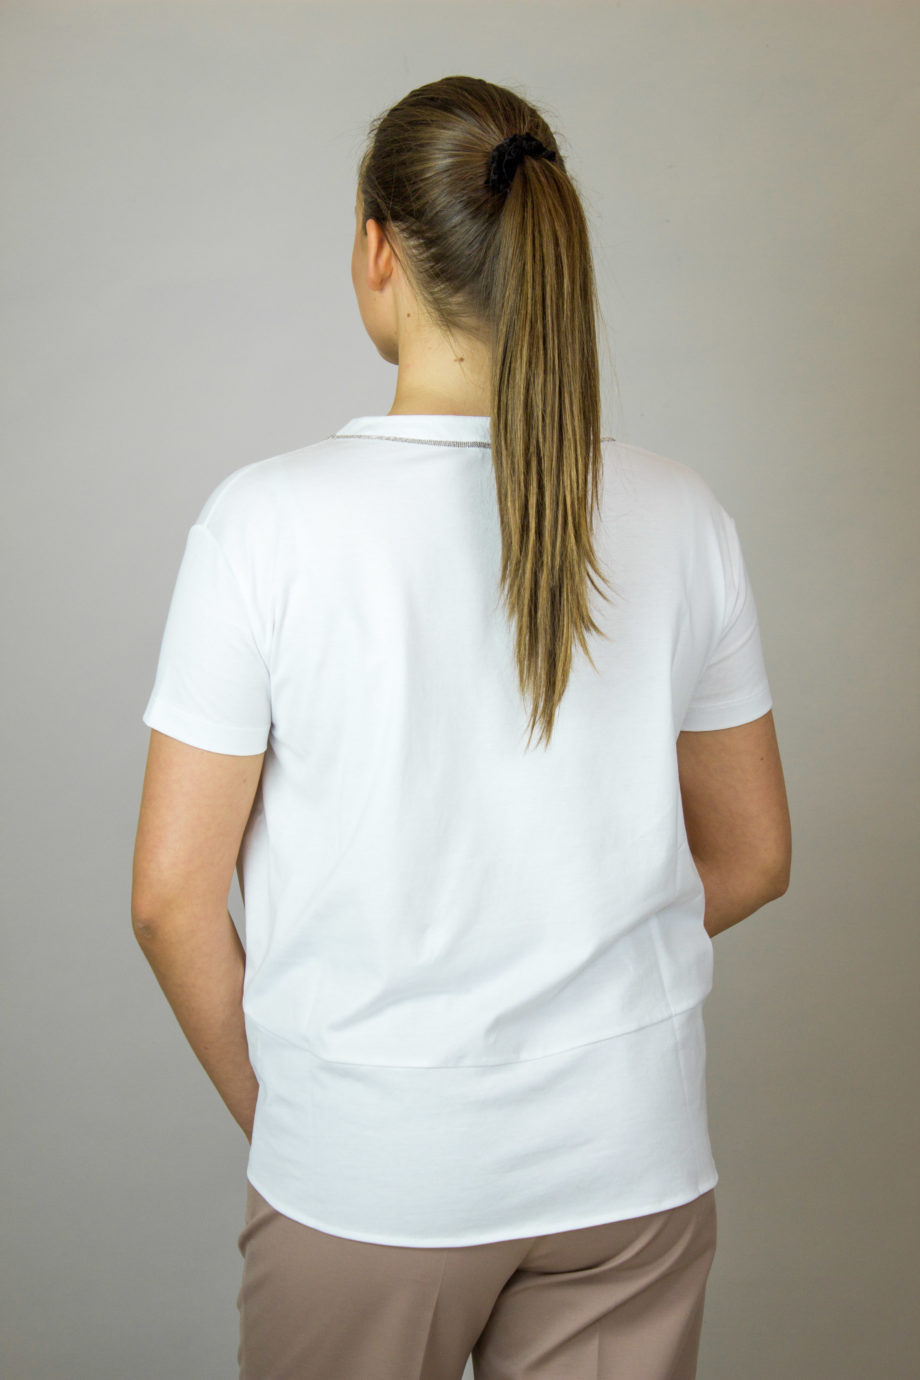 FABIANA FILIPPI white t-shirt